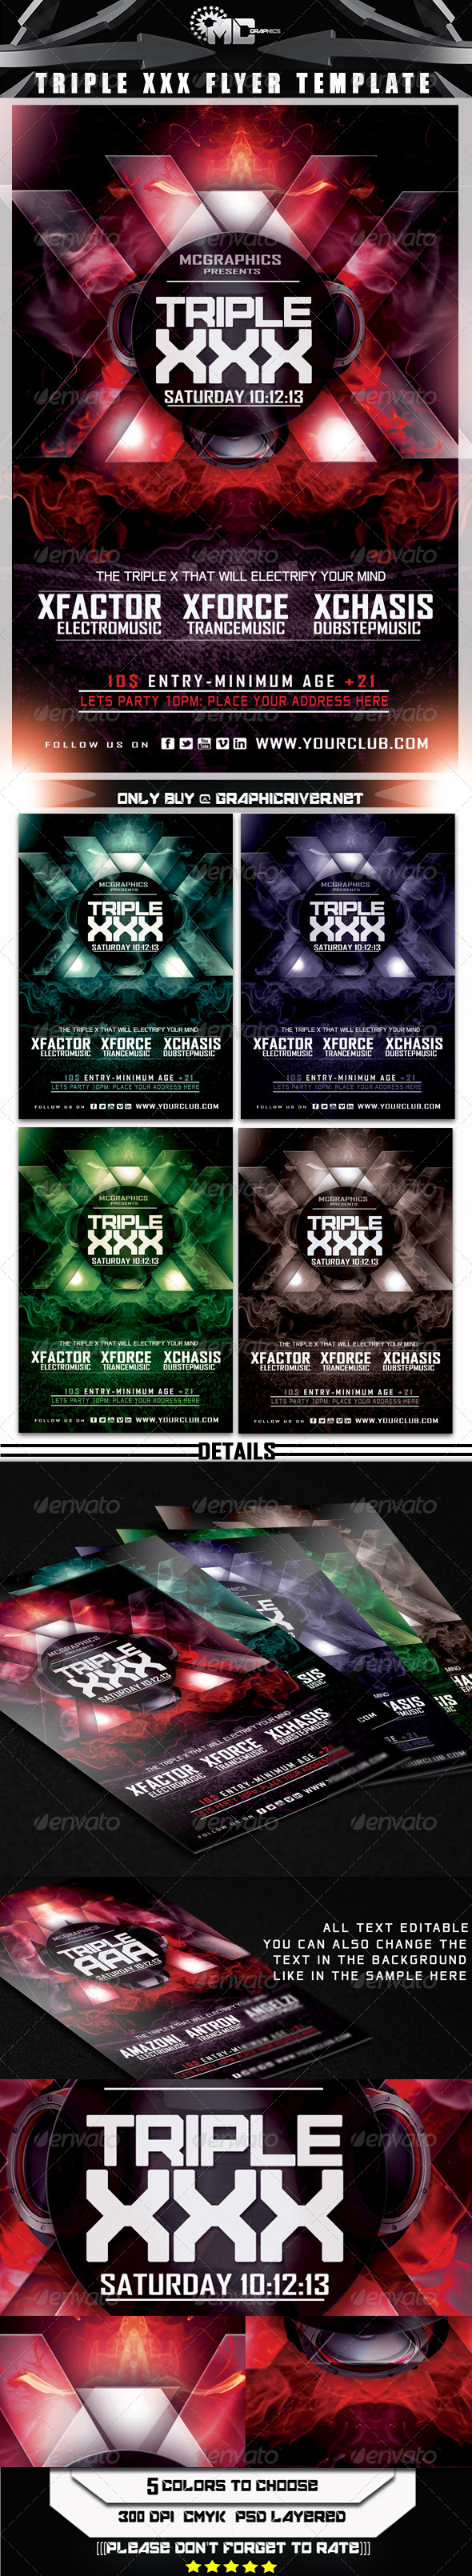 Triple XXX Flyer Template - Flyers Print Templates